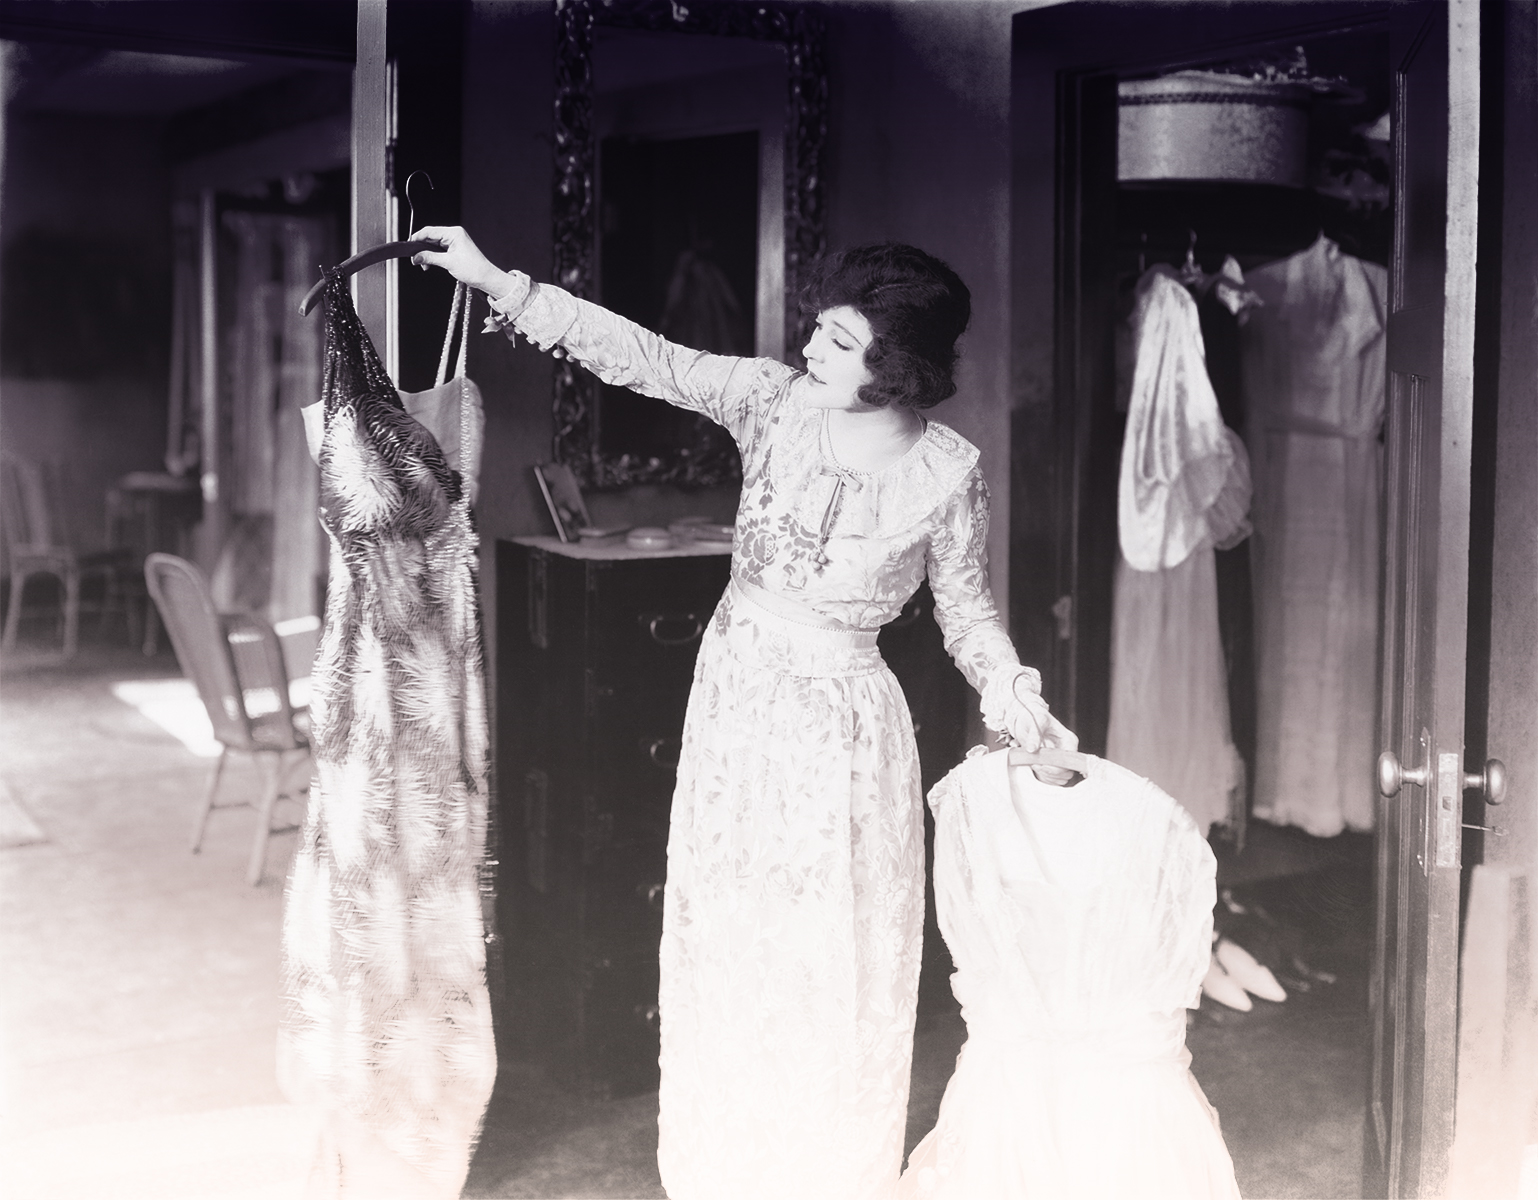 A woman from the 1920s holds up a hanger with a dress and looks at it while holding a white dress in her other hand.